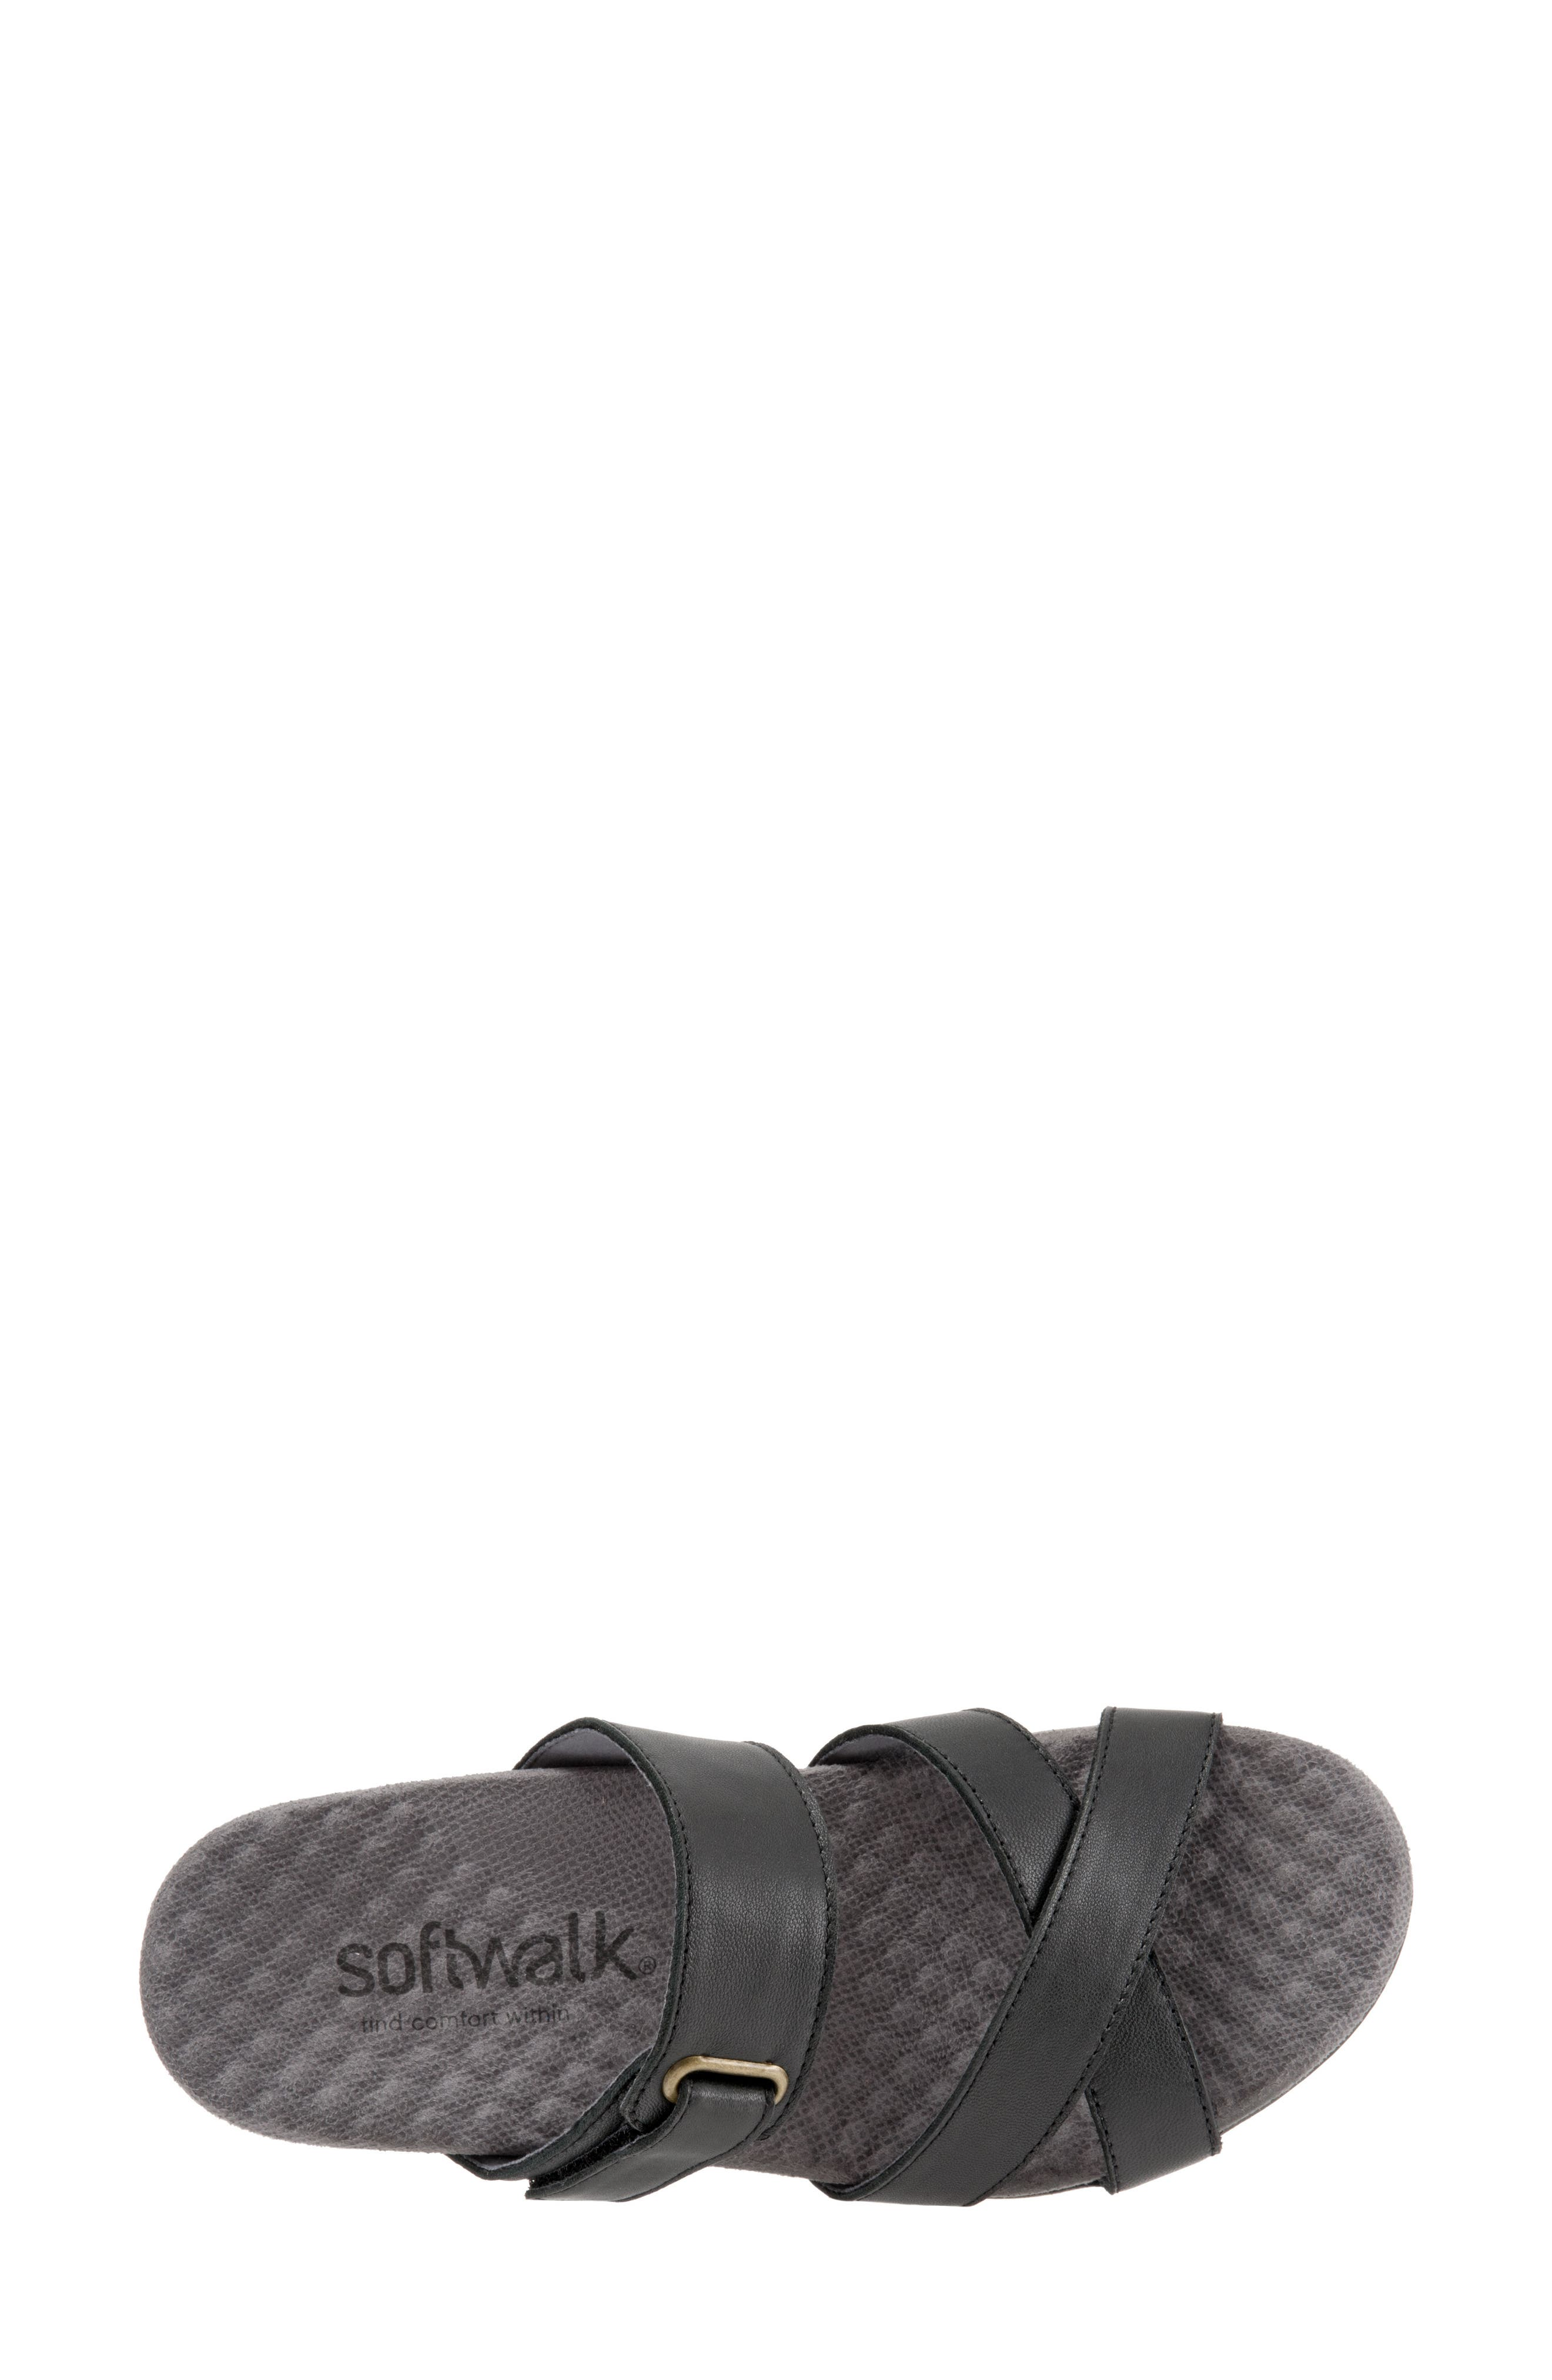 SOFTWALK<SUP>®</SUP>, Brimley Sandal, Alternate thumbnail 5, color, BLACK LEATHER